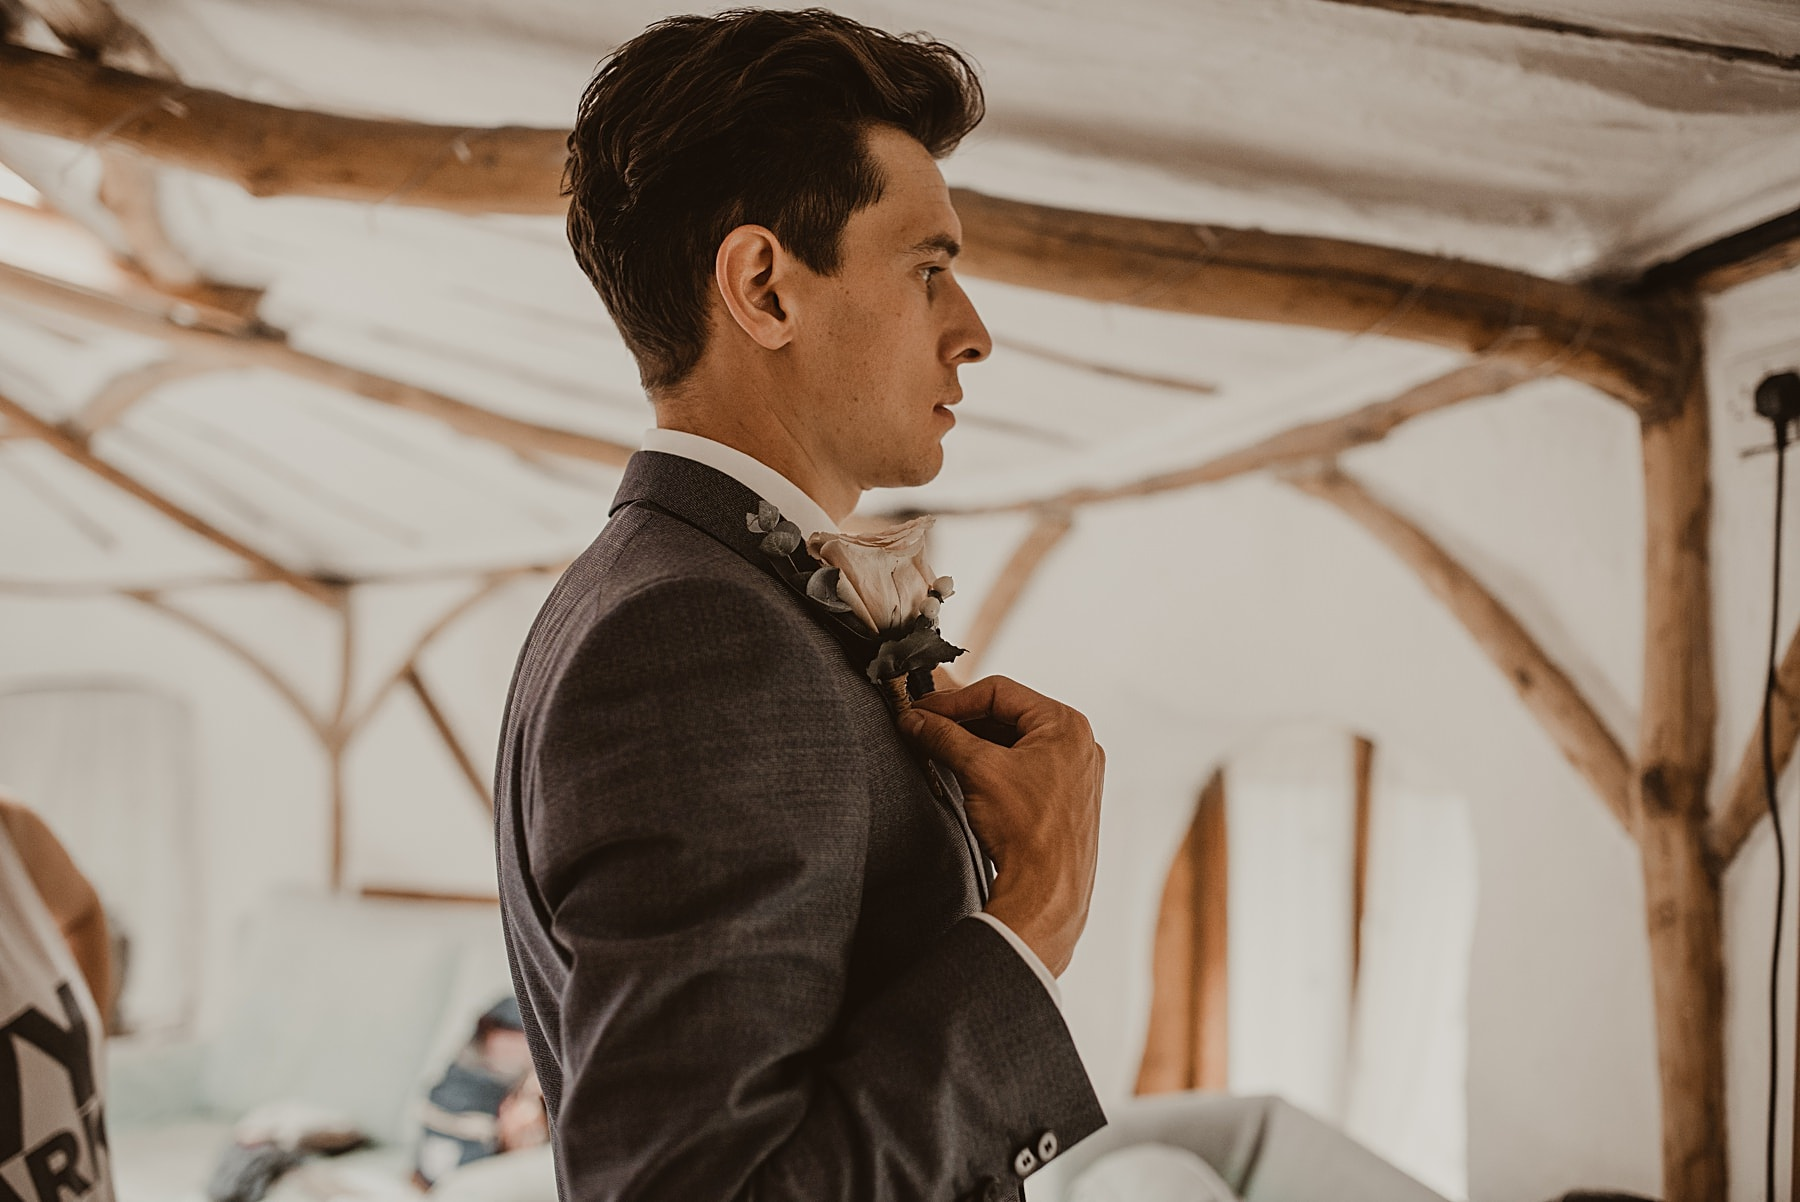 Groom putting on button hole